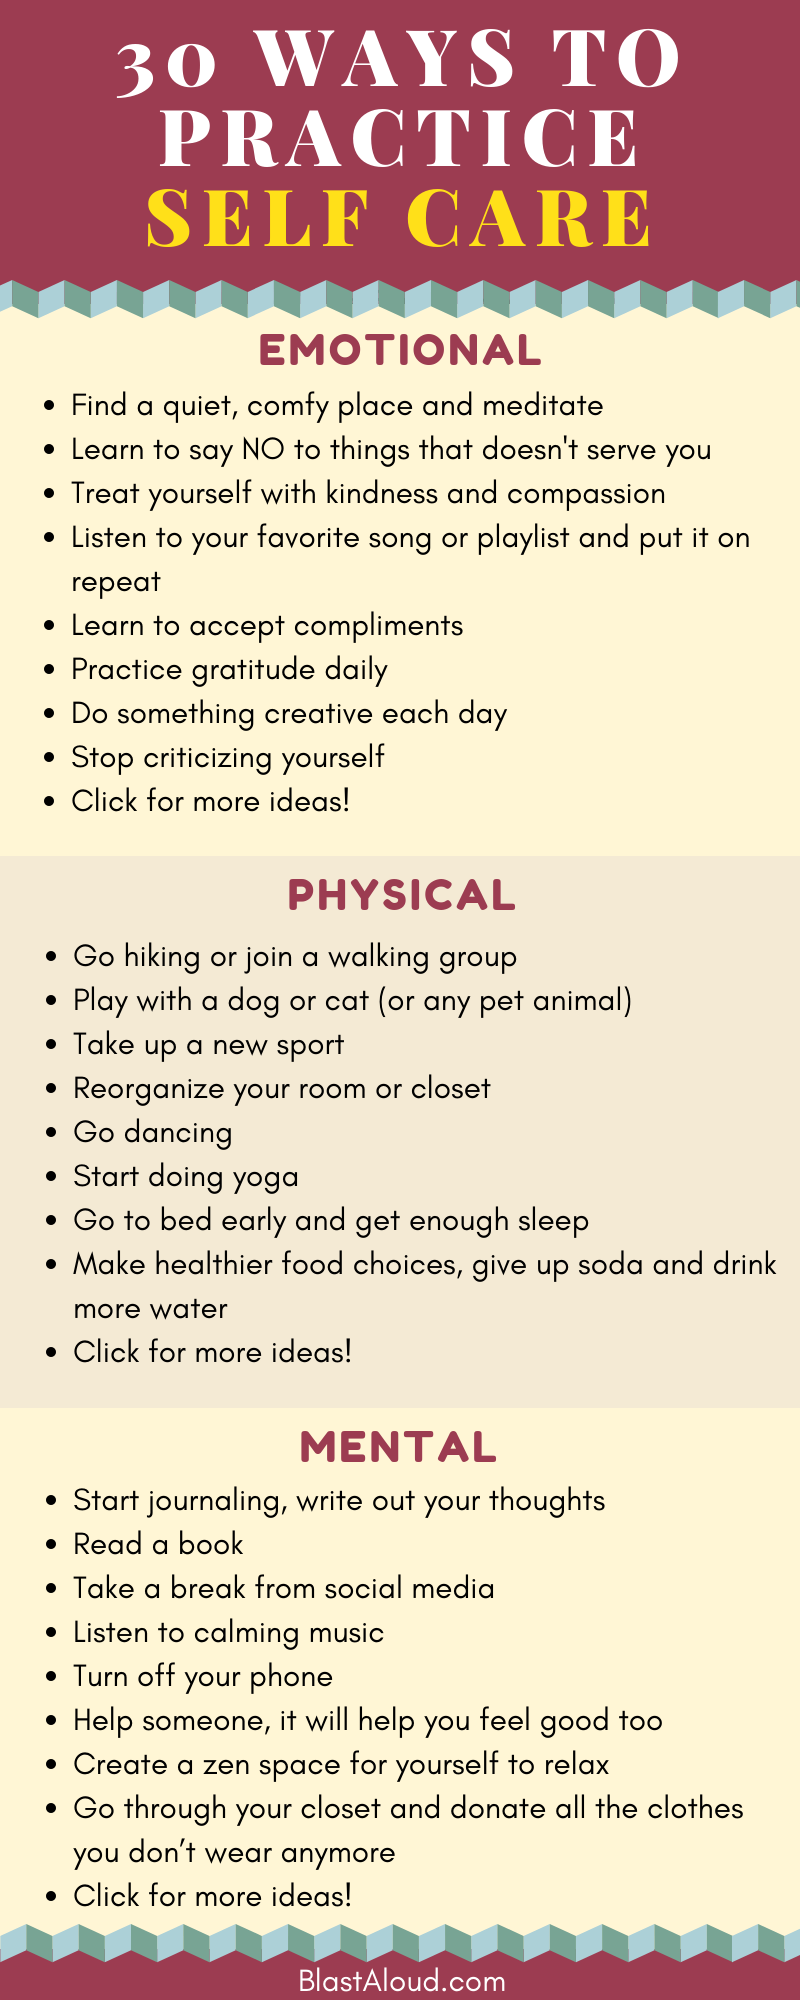 30 Ways to practice self care